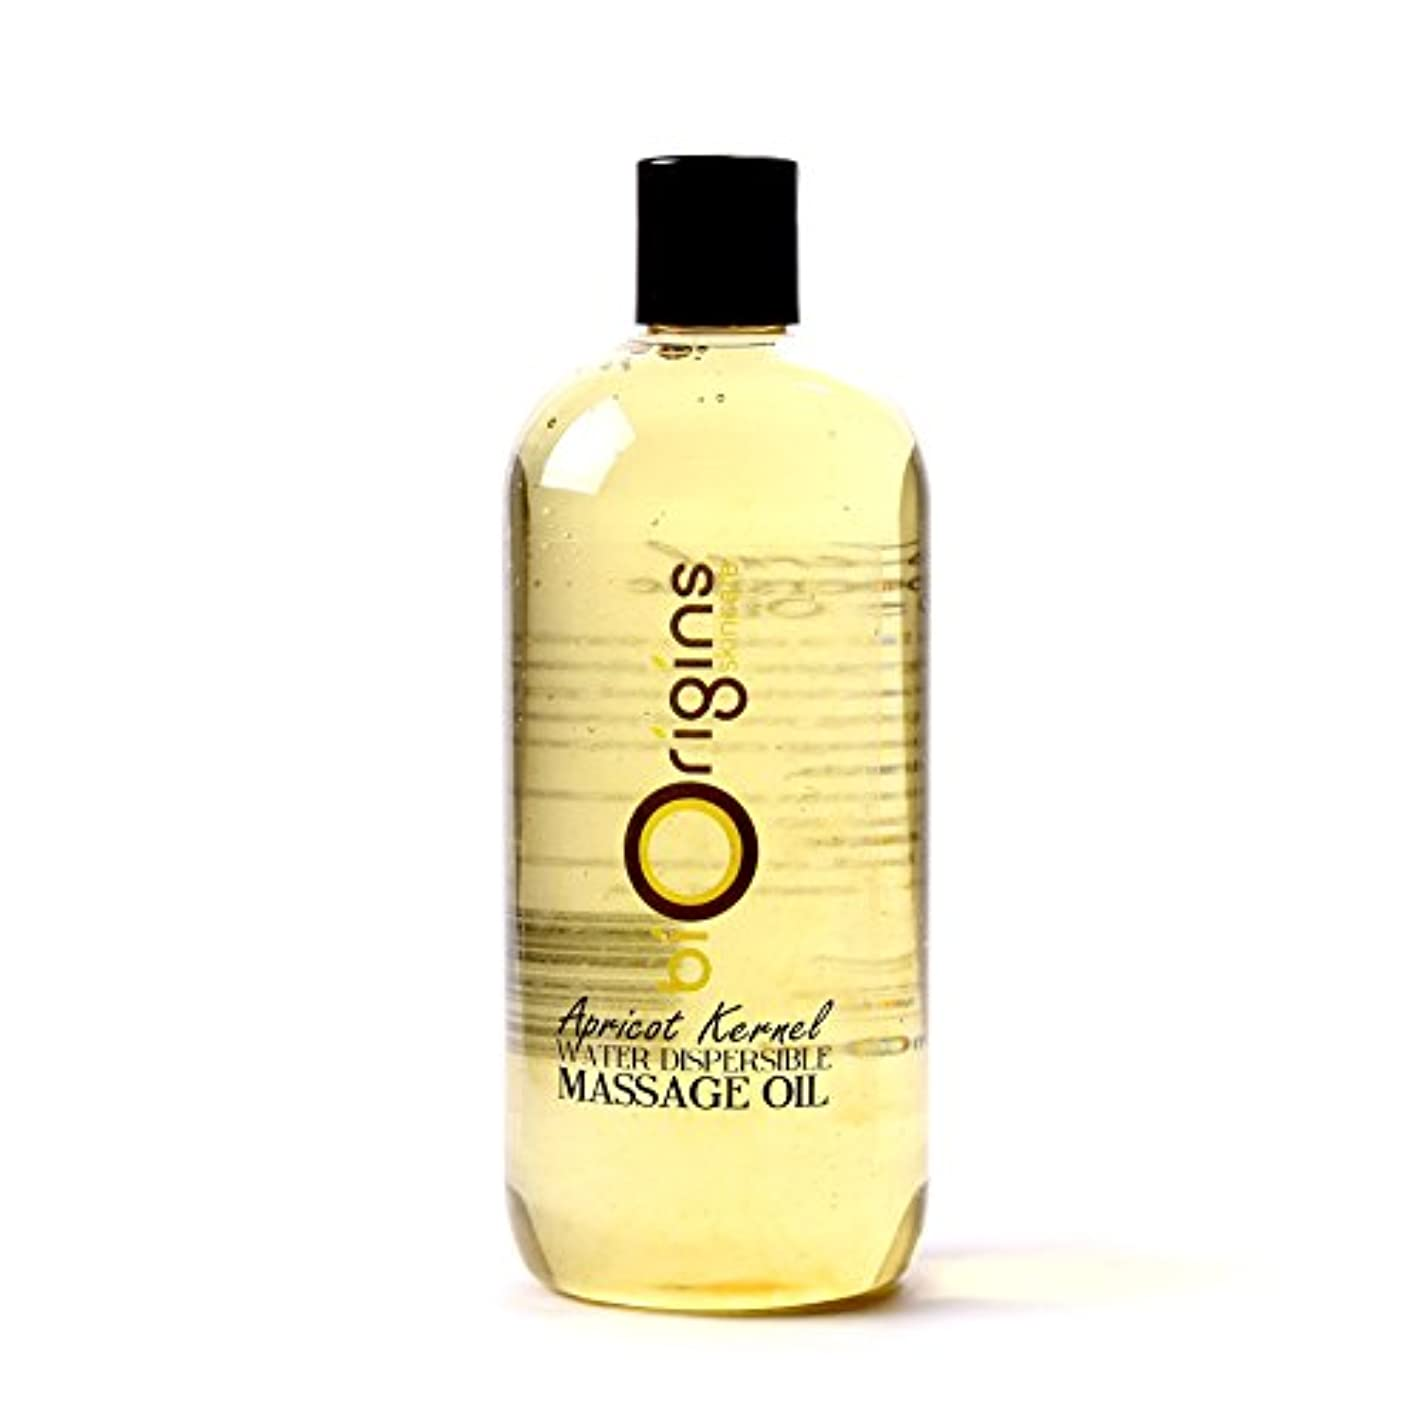 国家お客様観光Apricot Kernel Water Dispersible Massage Oil - 500ml - 100% Pure